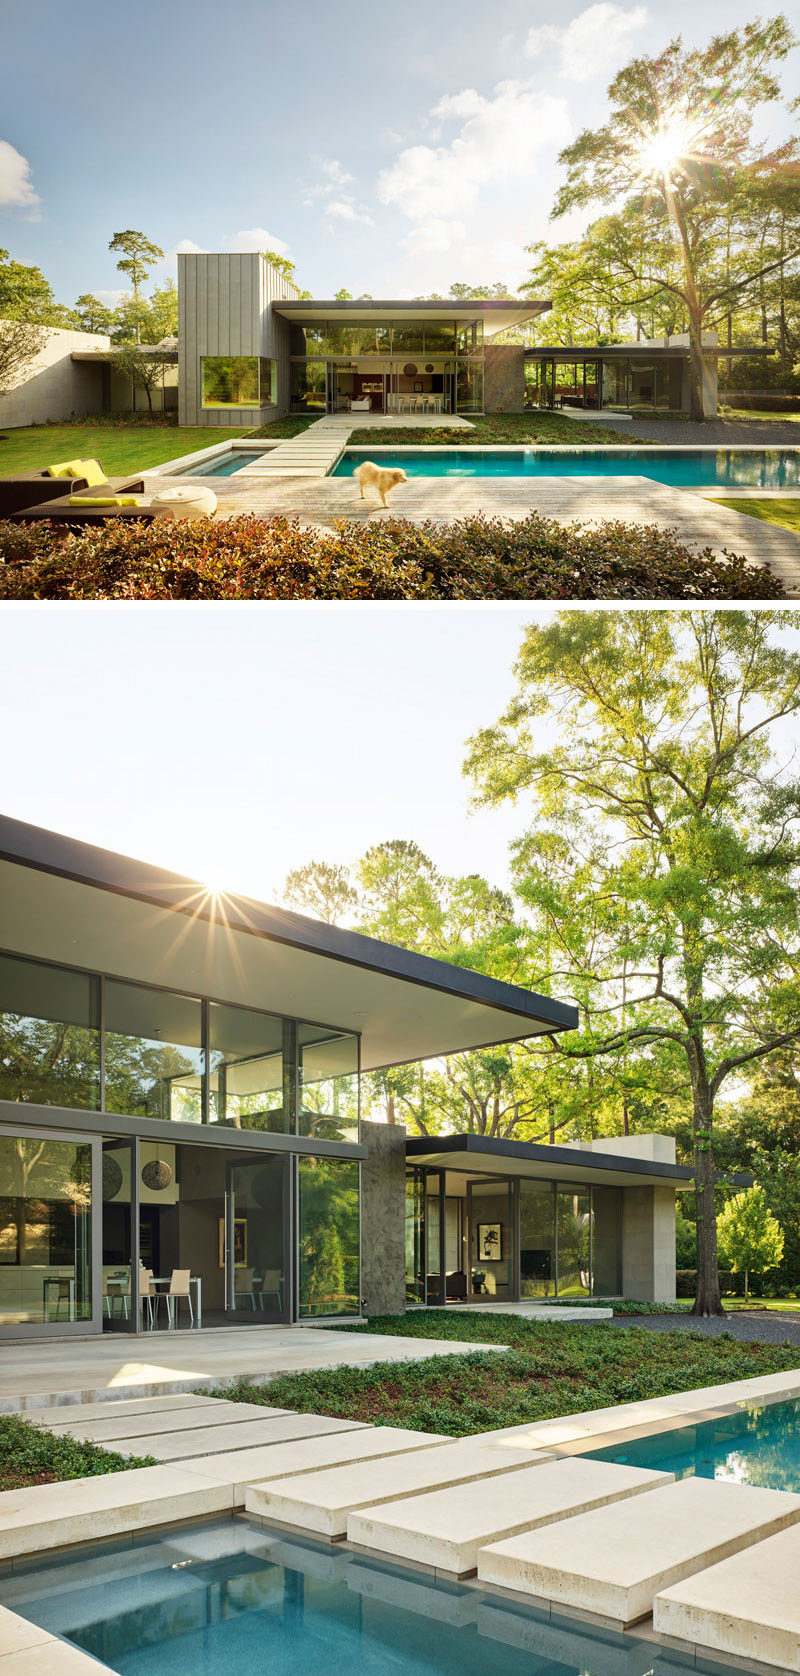 This modern house has been designed with large expanses of glass alternating with masses of Texas limestone, and the backyard has a swimming pool and plenty of space to relax. #ModernHouse #SwimmingPool #Landscaping